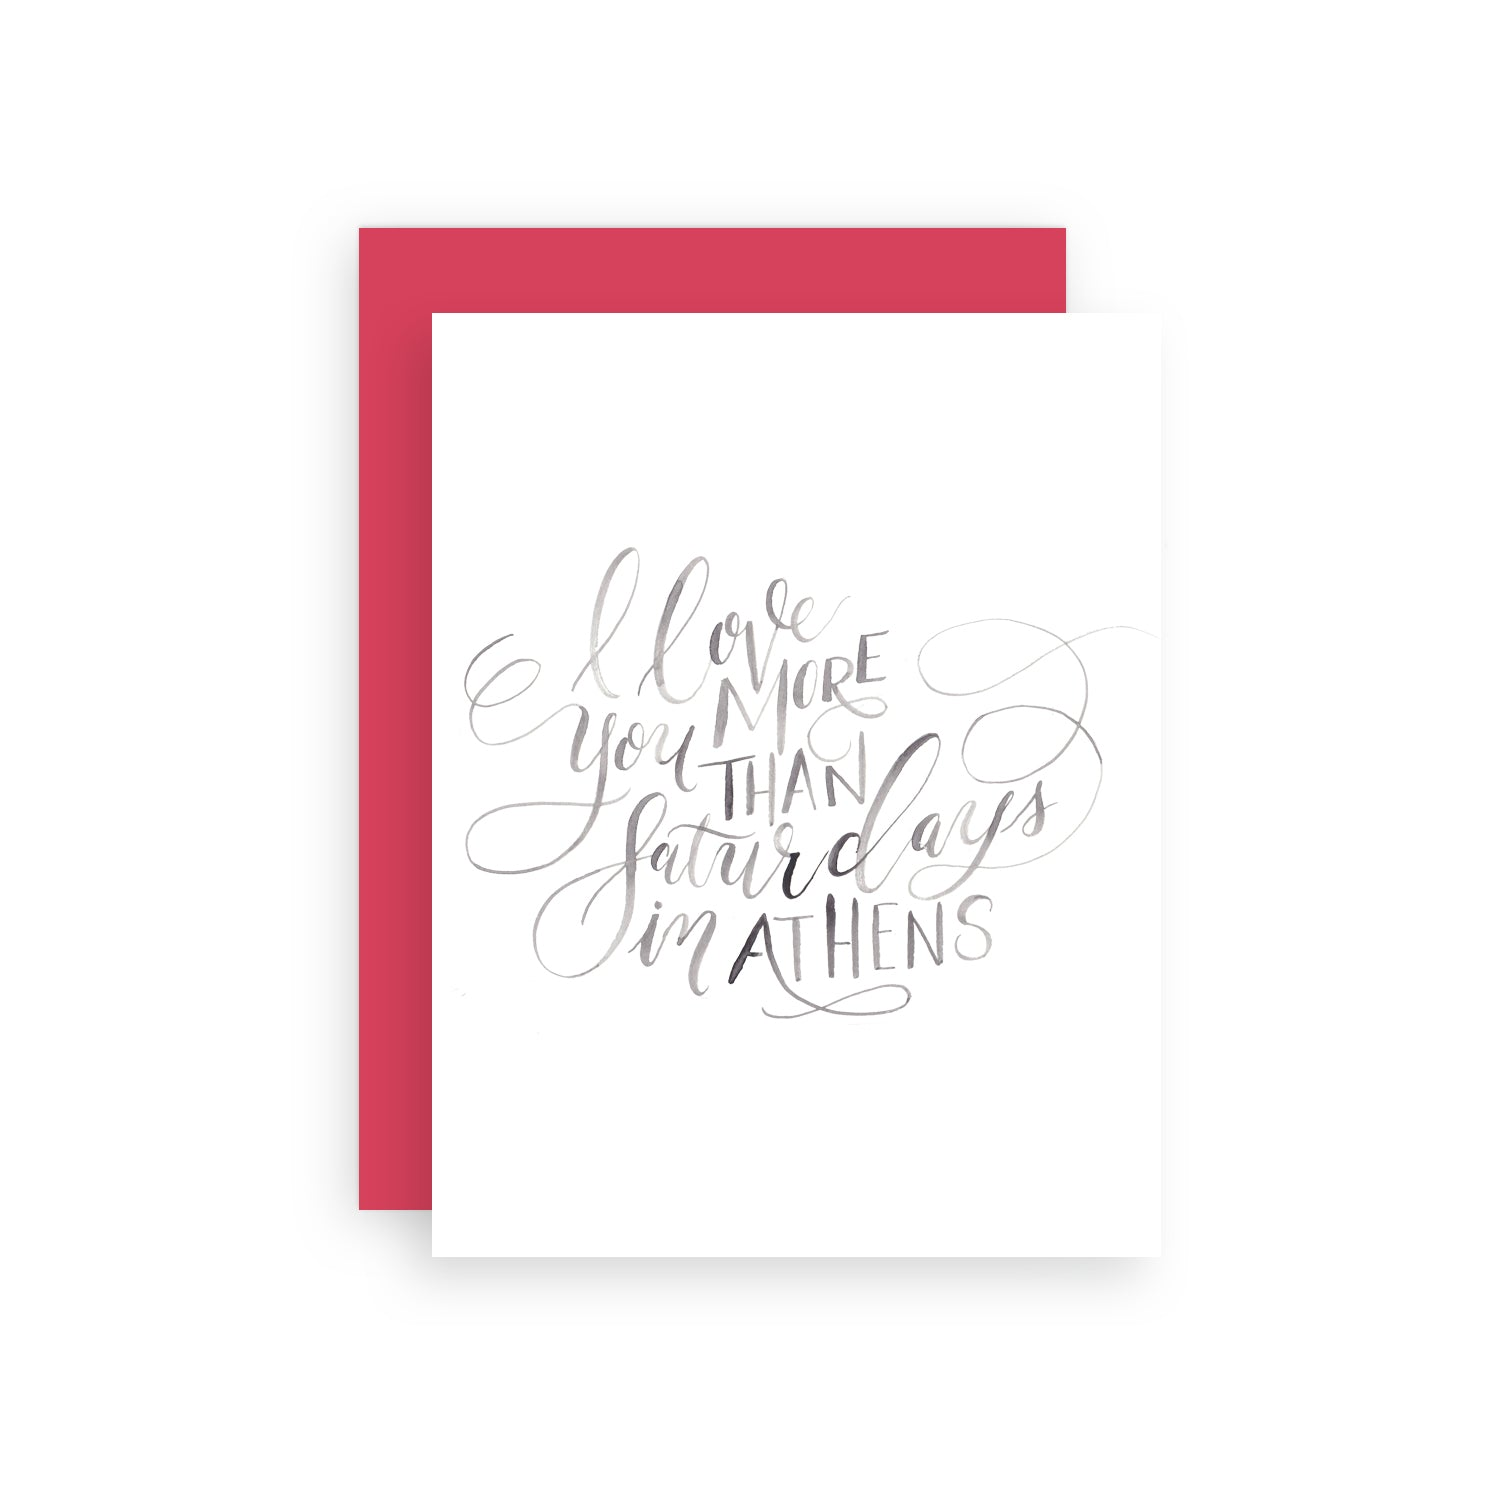 I Love You More Than Saturdays in Athens Greeting Card